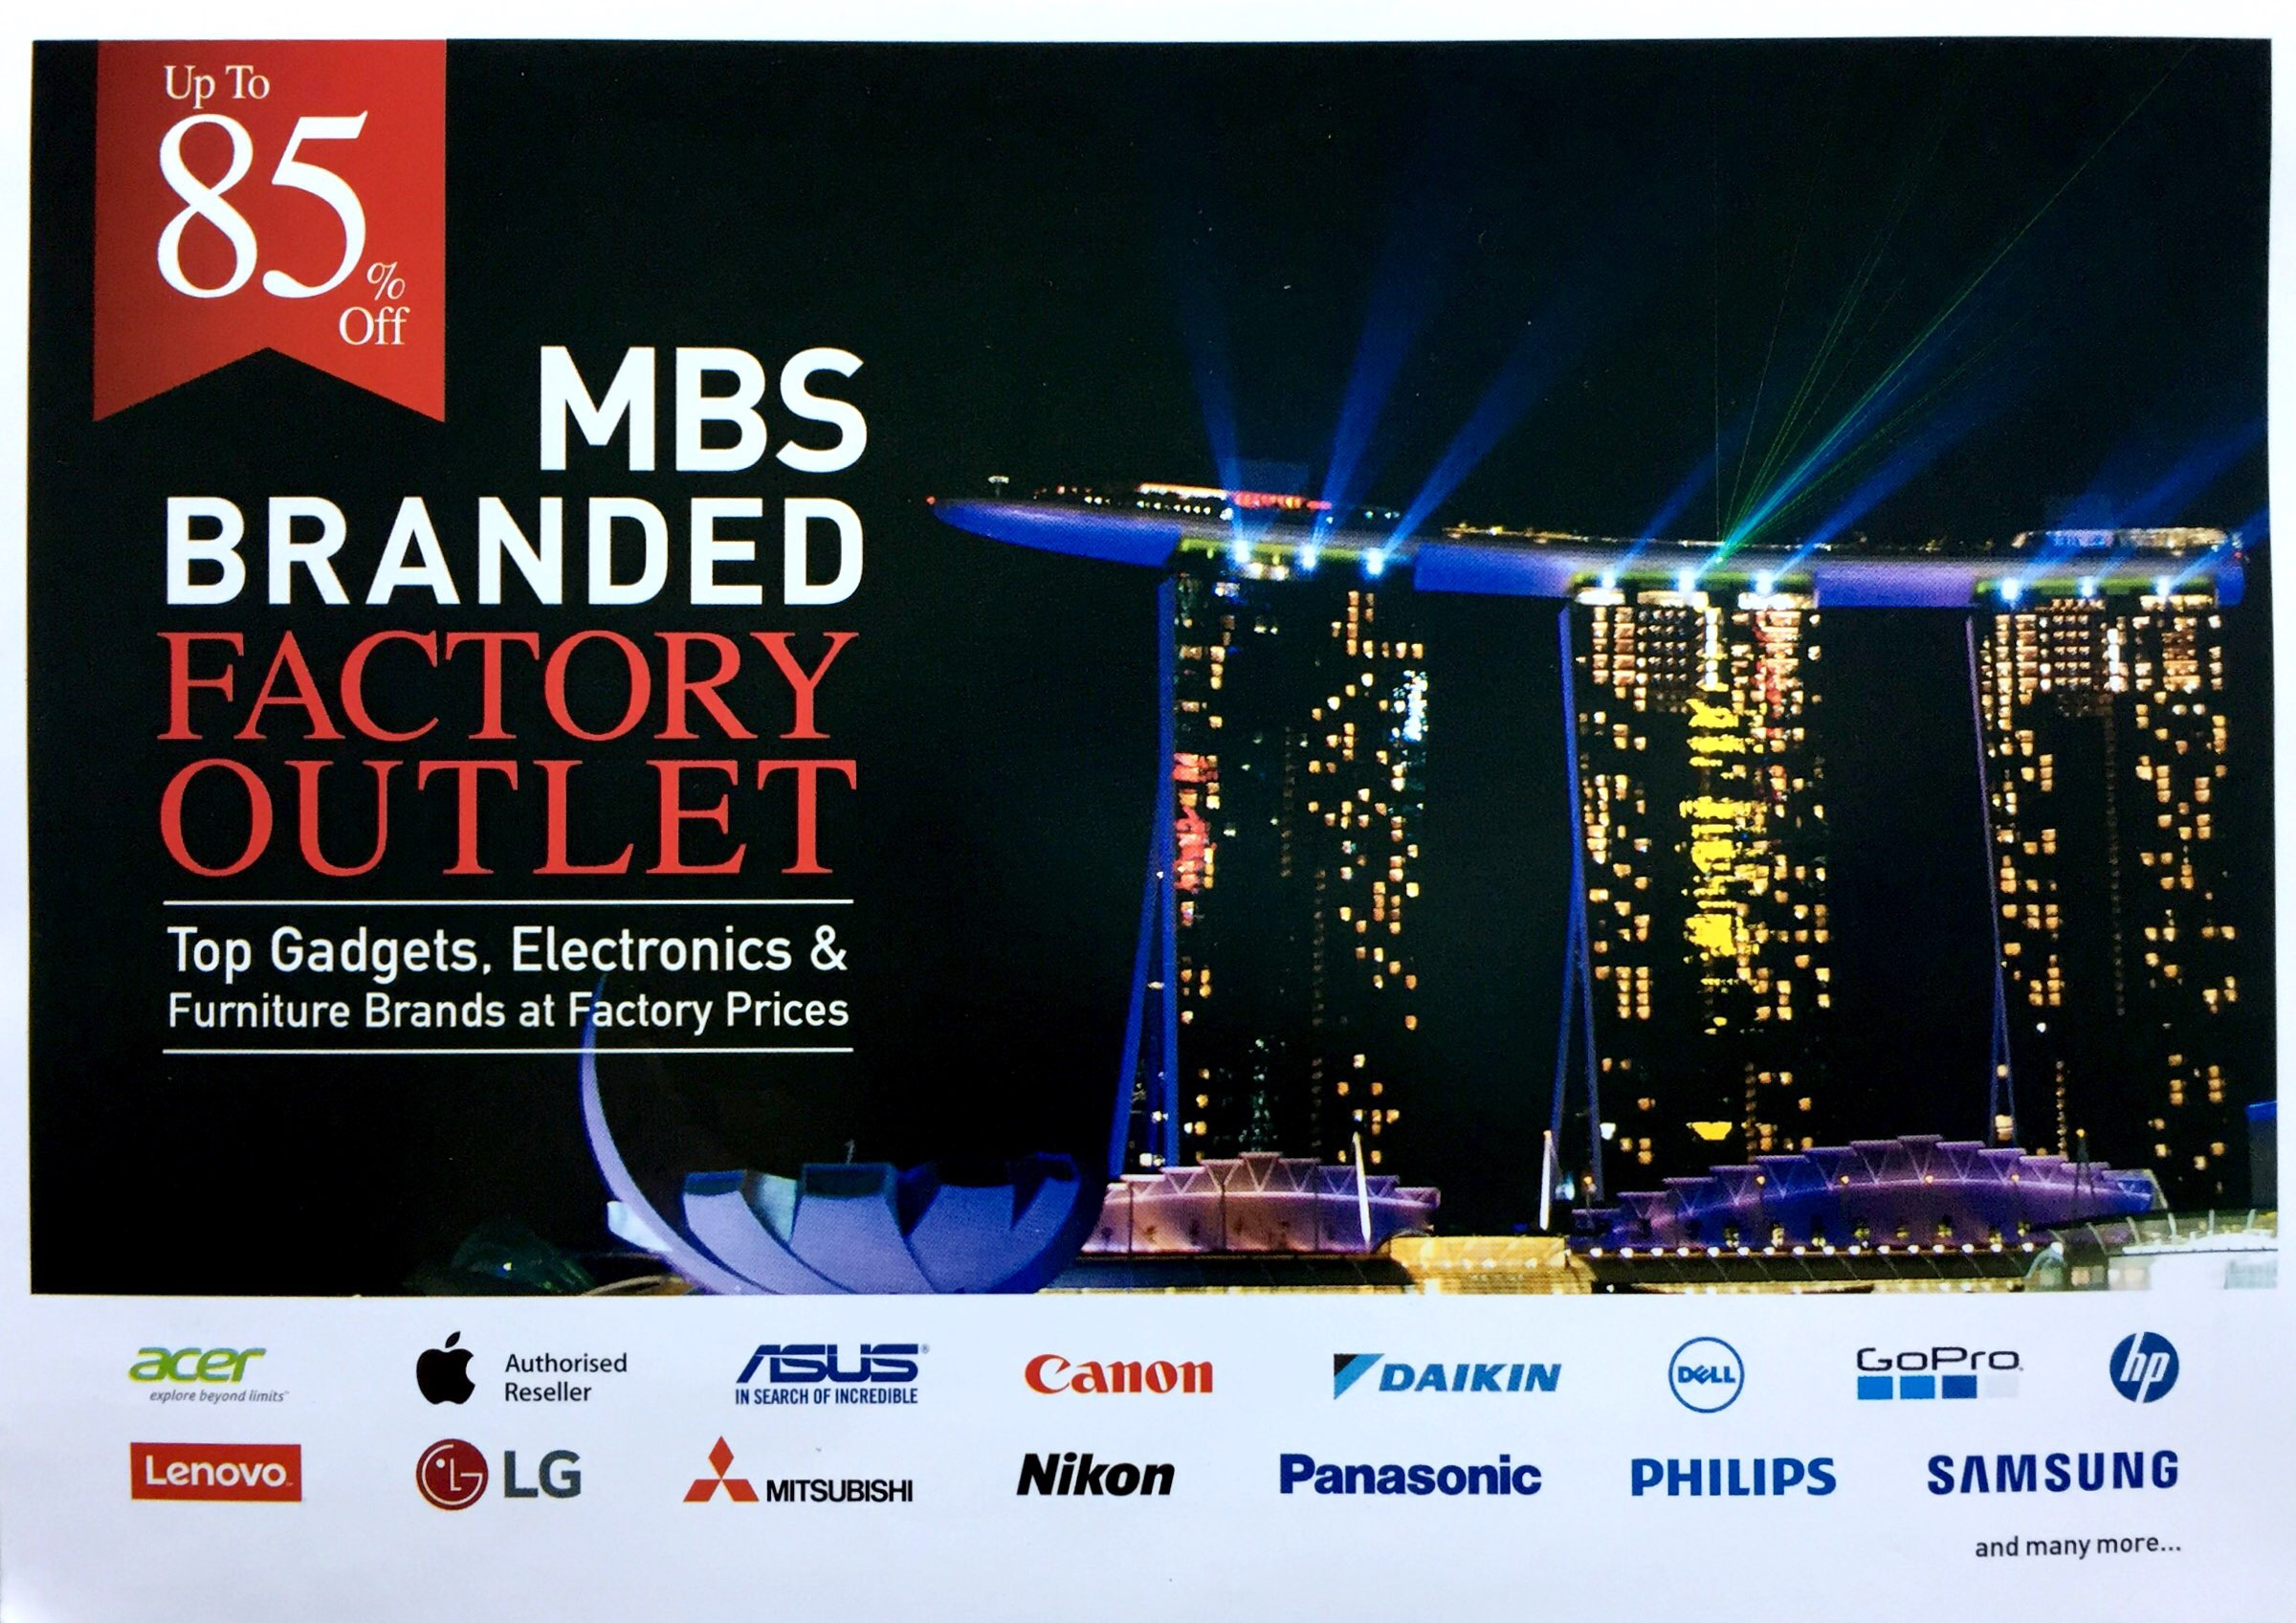 MBS Branded Factory Outlet | 20 to 22 October 2017 | 11am to 9pm | Marina Bay Sands Convention Centre Level 1 Hall A and B| pg1